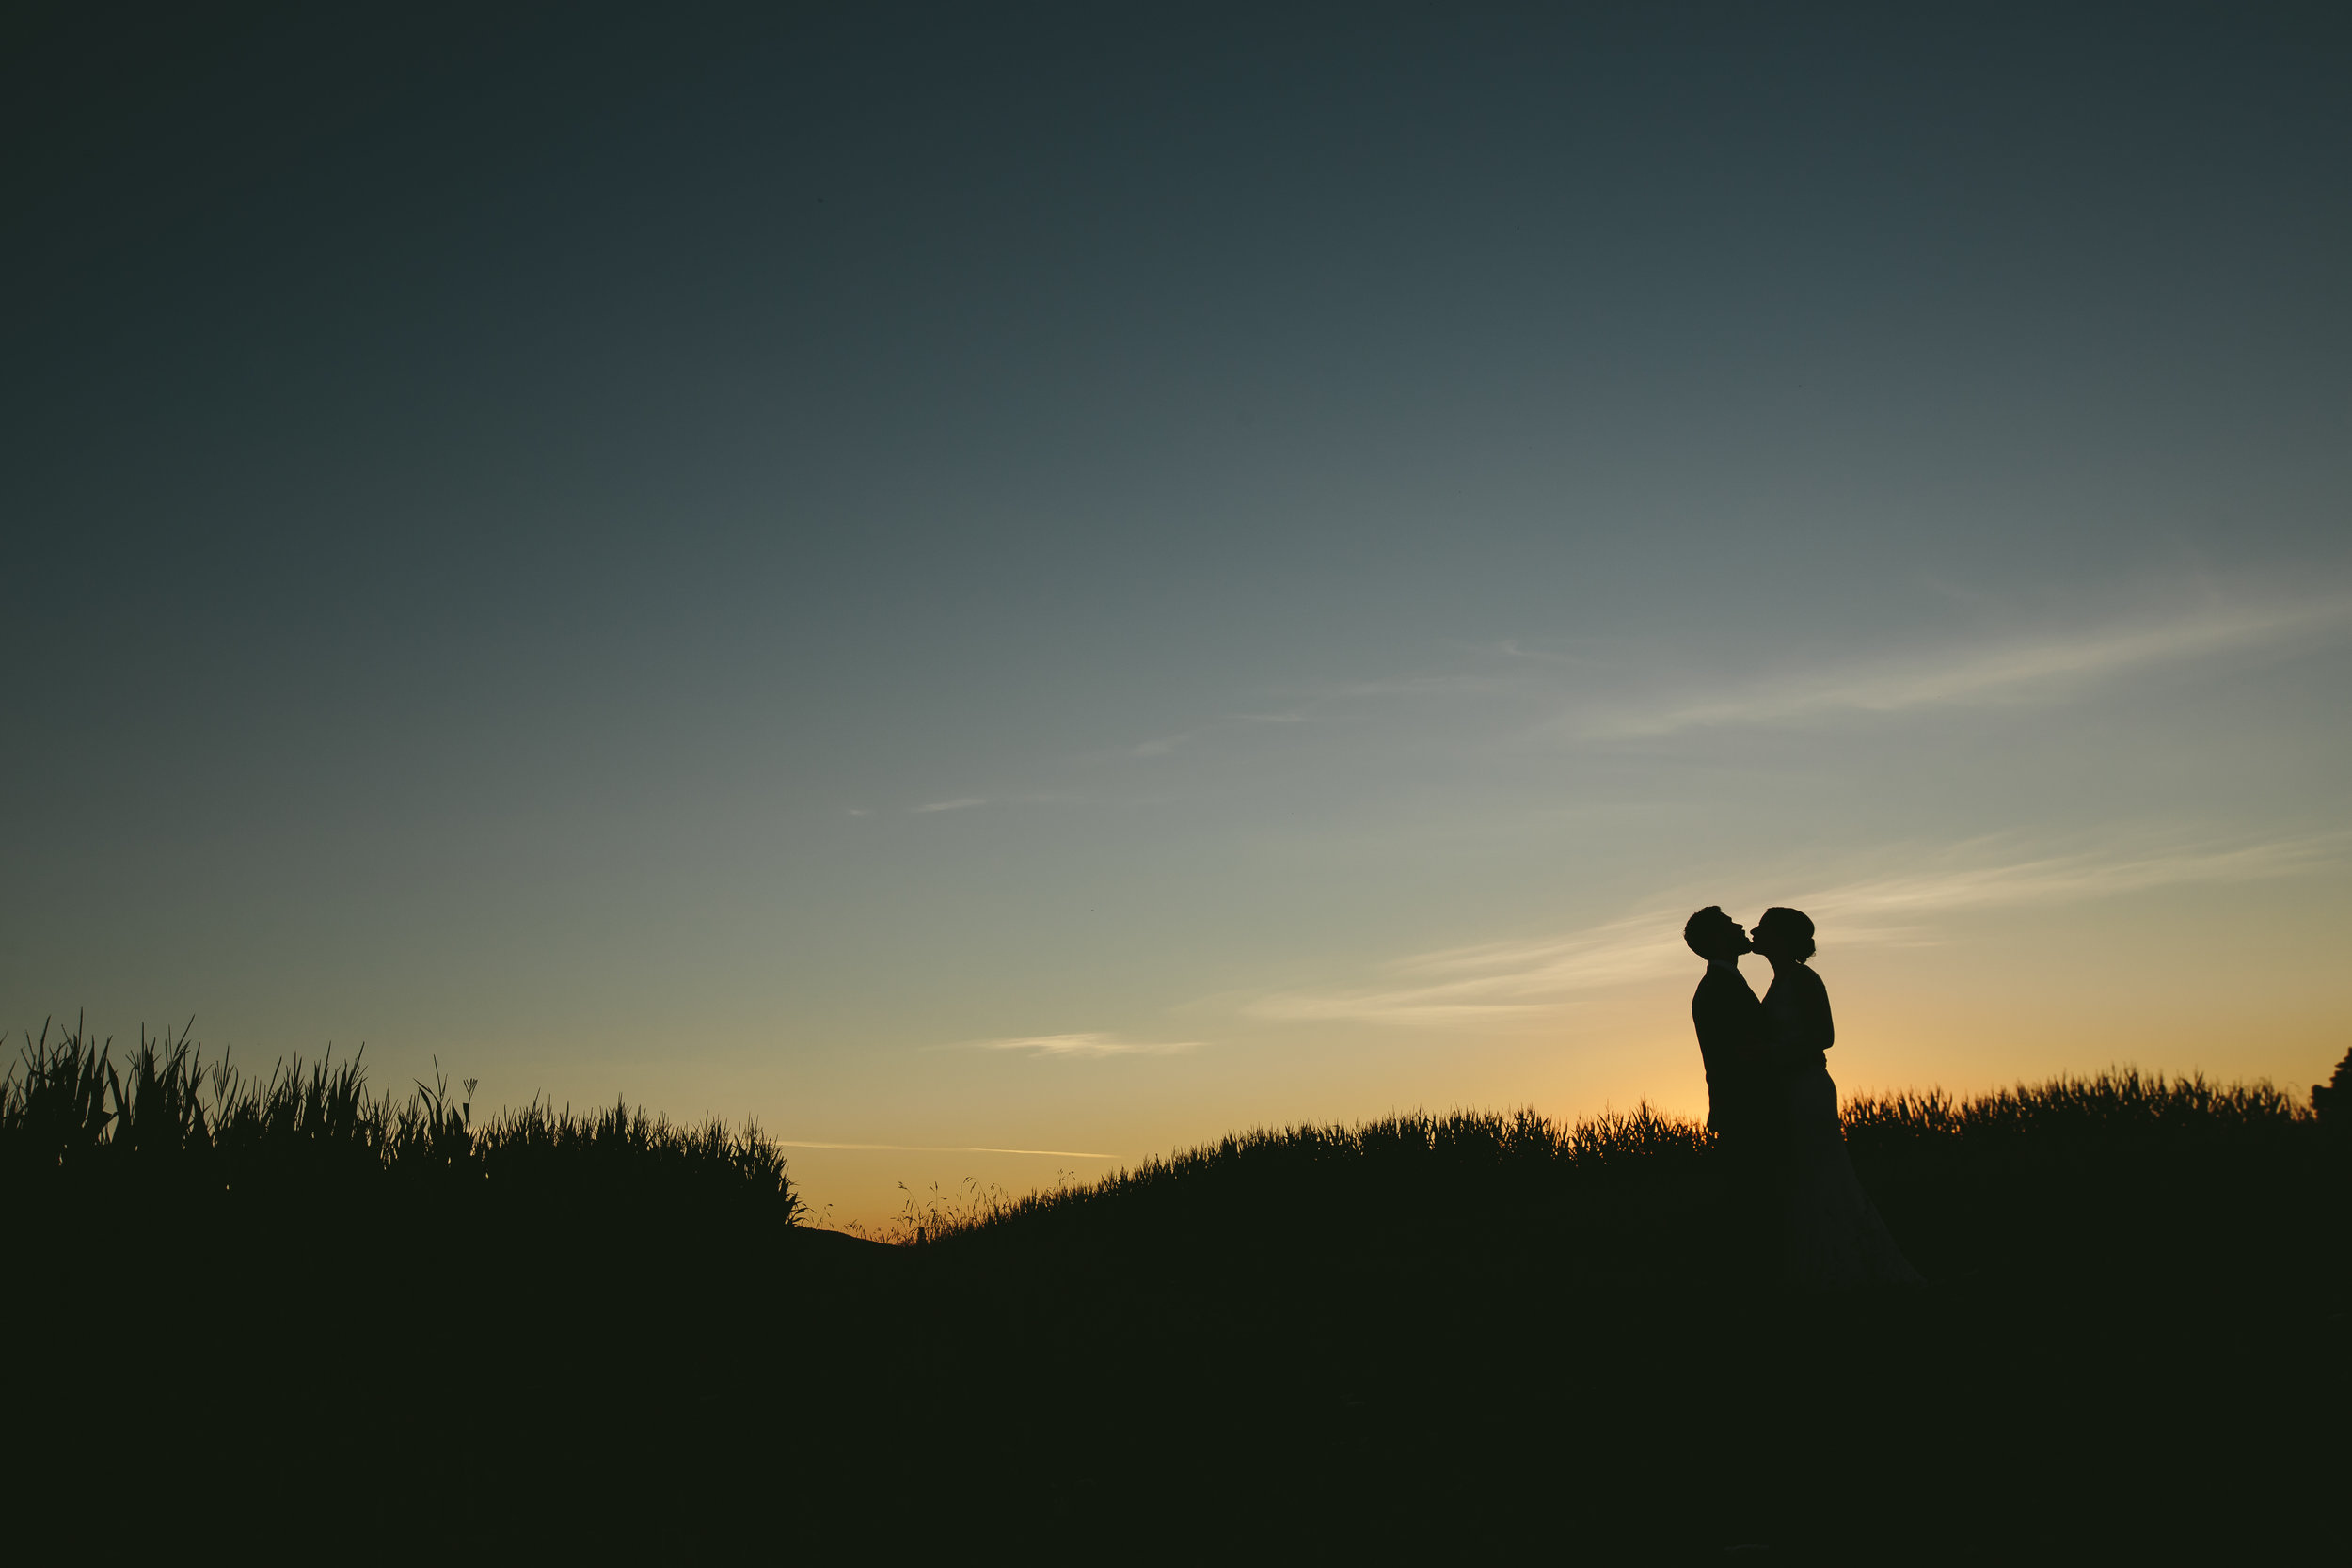 hudson-valley-farm-weddings-pioneer-farm-weddings-warwick-ny-bride-and-groom-kiss-silhouette.jpg